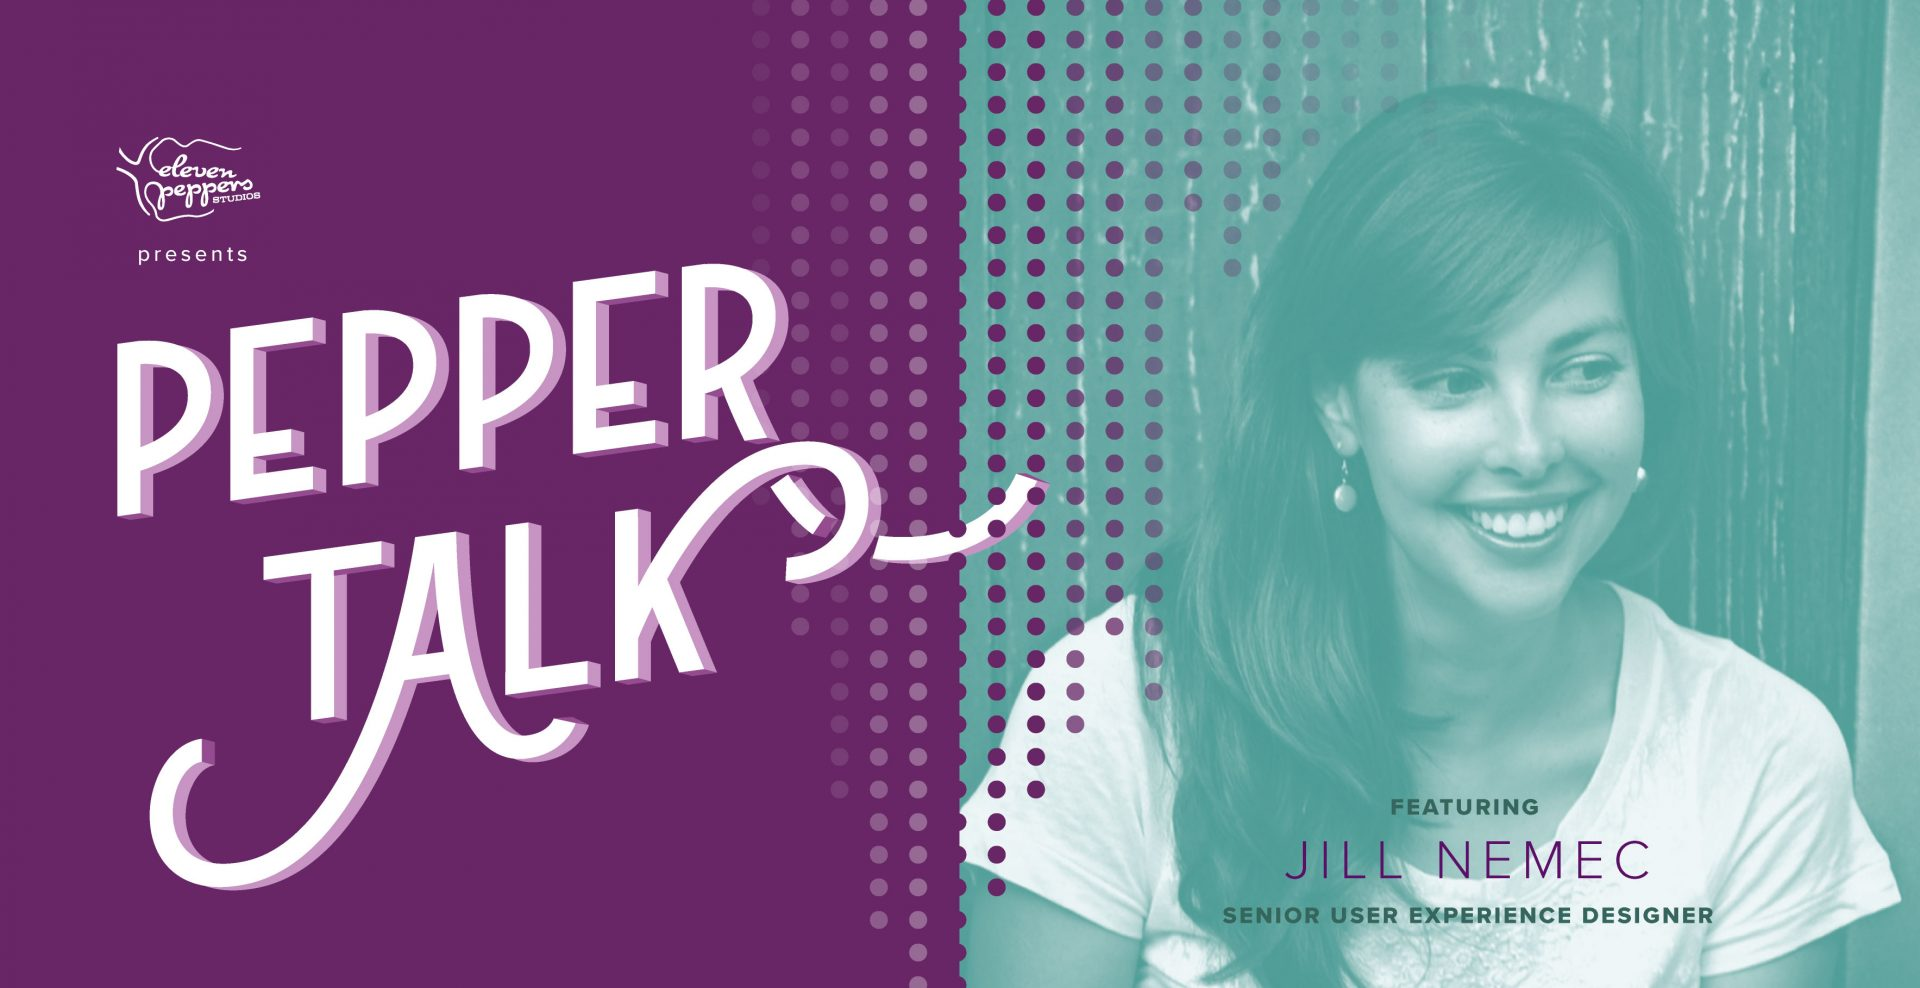 Pepper Talk with Jill Nemec